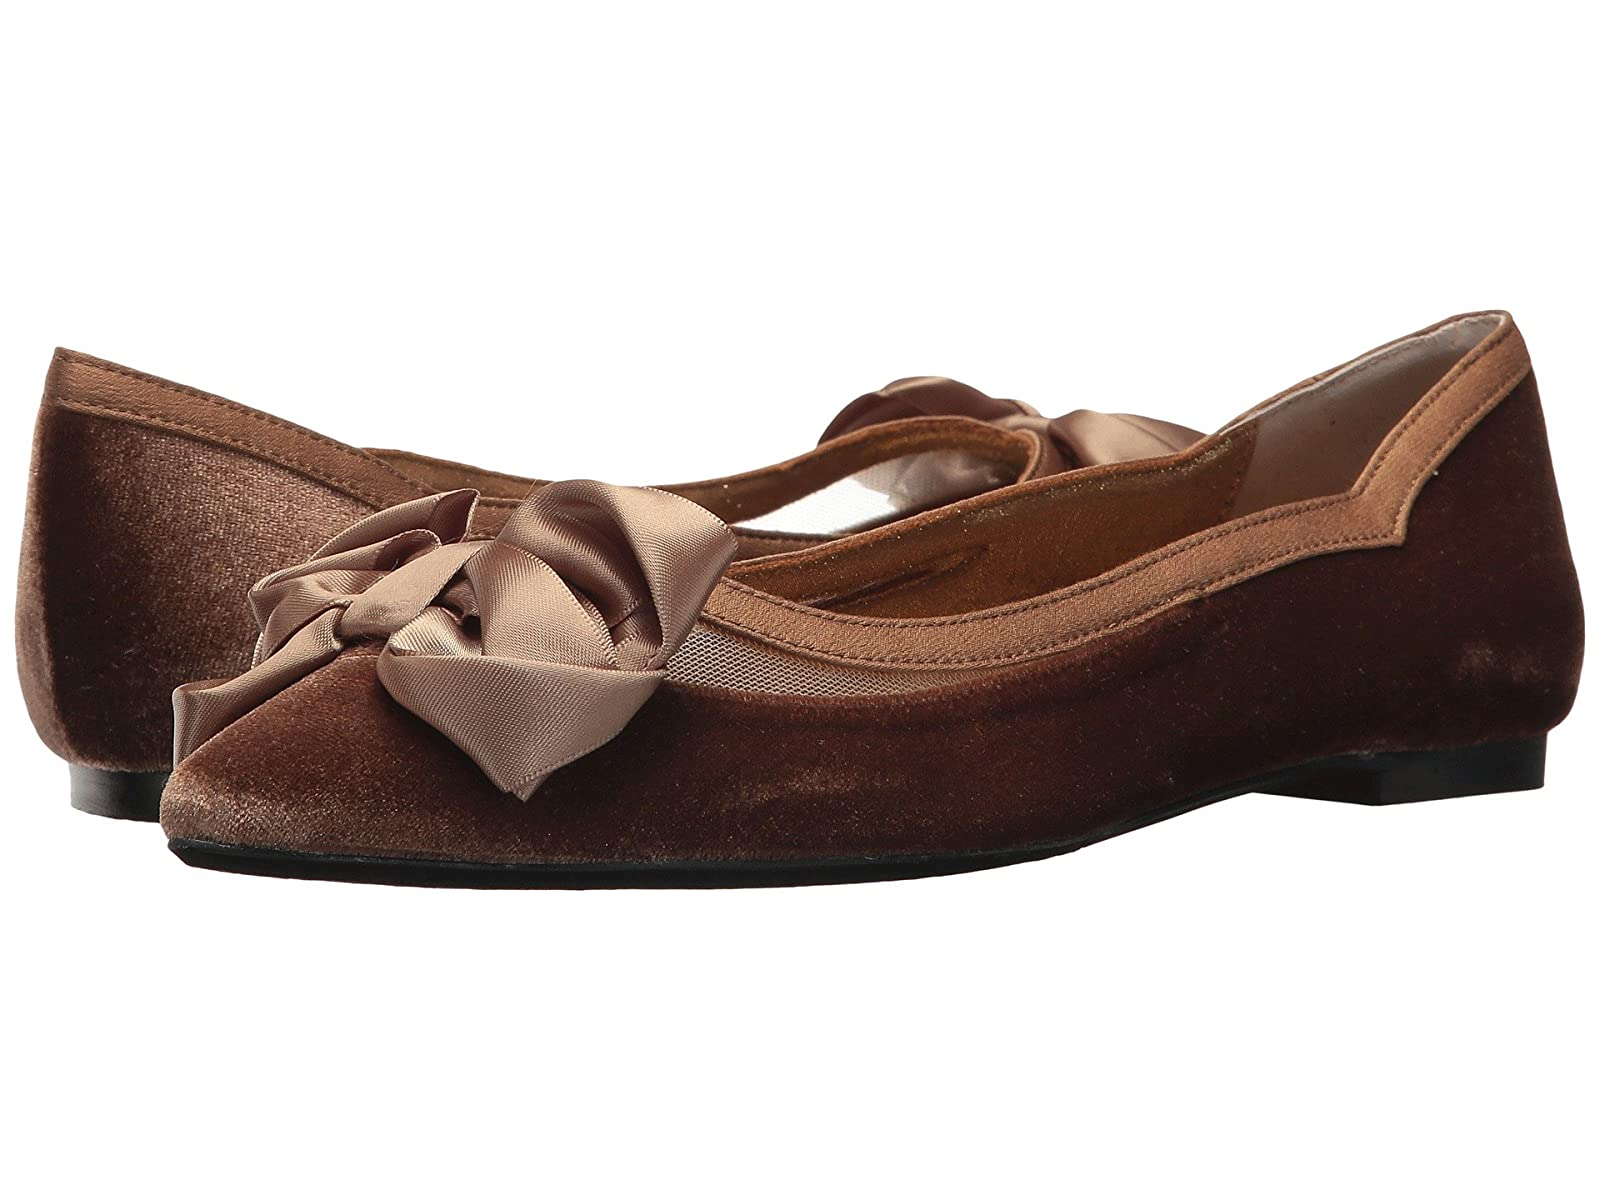 J. Renee AllitsonCheap and distinctive eye-catching shoes